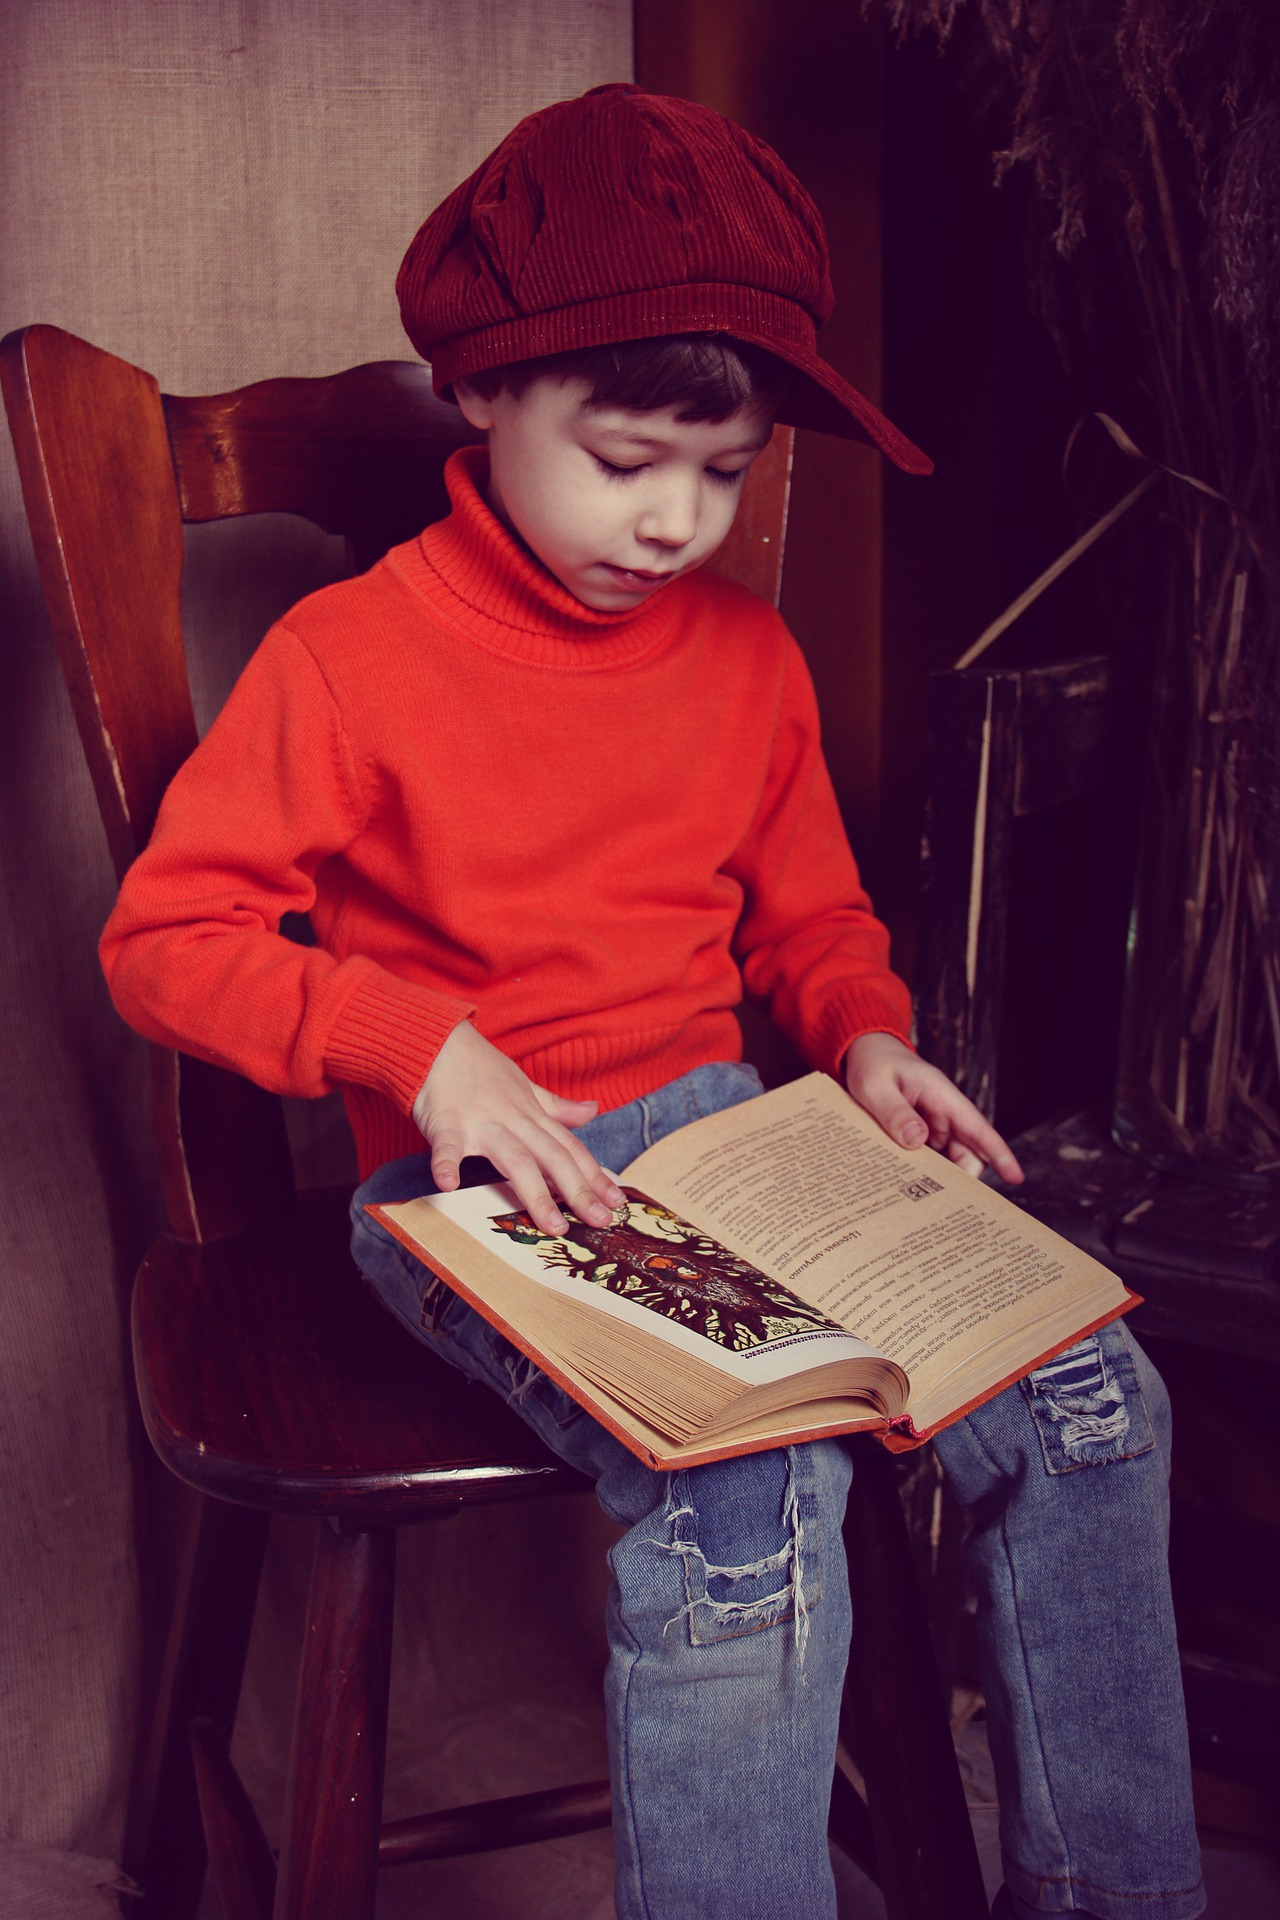 the-boy-with-the-book-4823006_1920